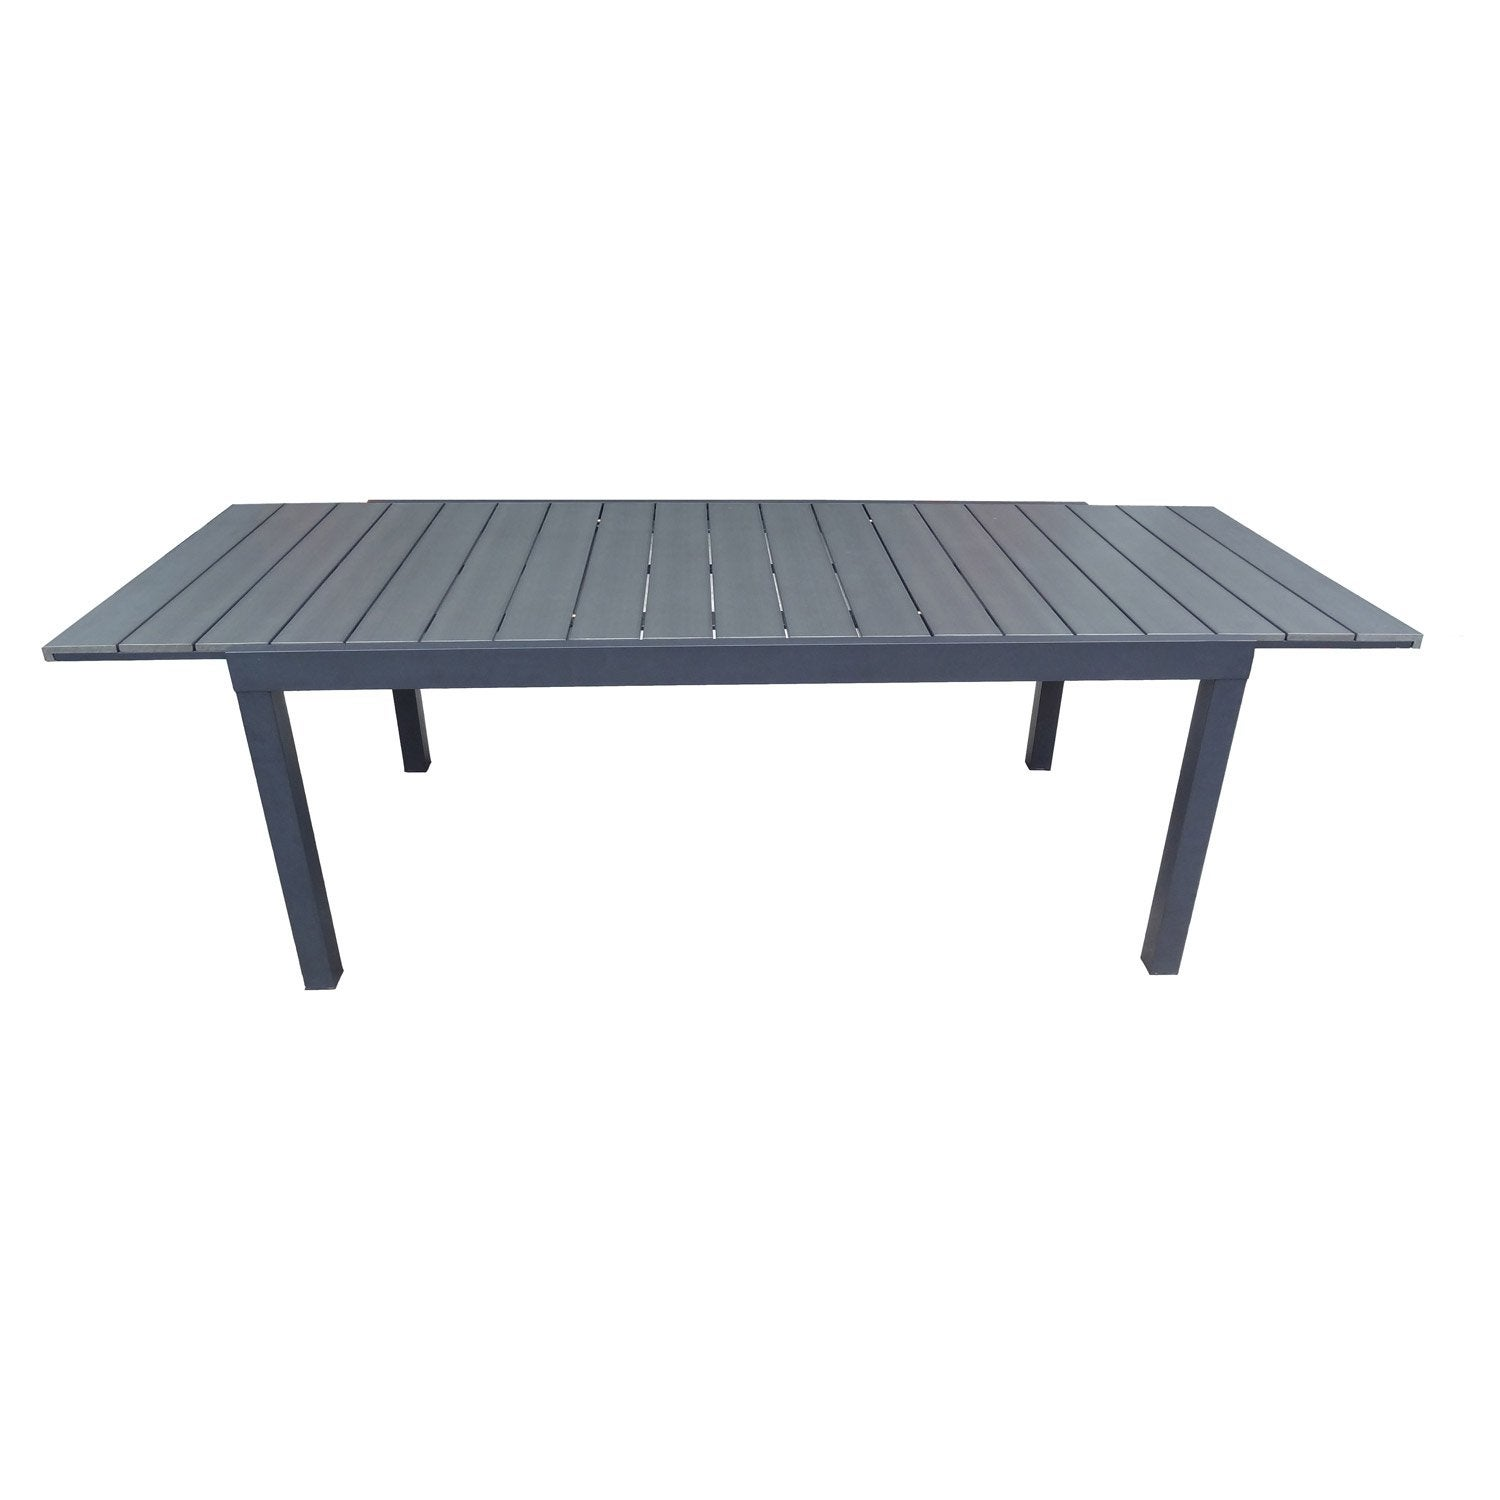 Table de jardin naterial pratt rectangulaire gris leroy - Leroy merlin table pliante ...